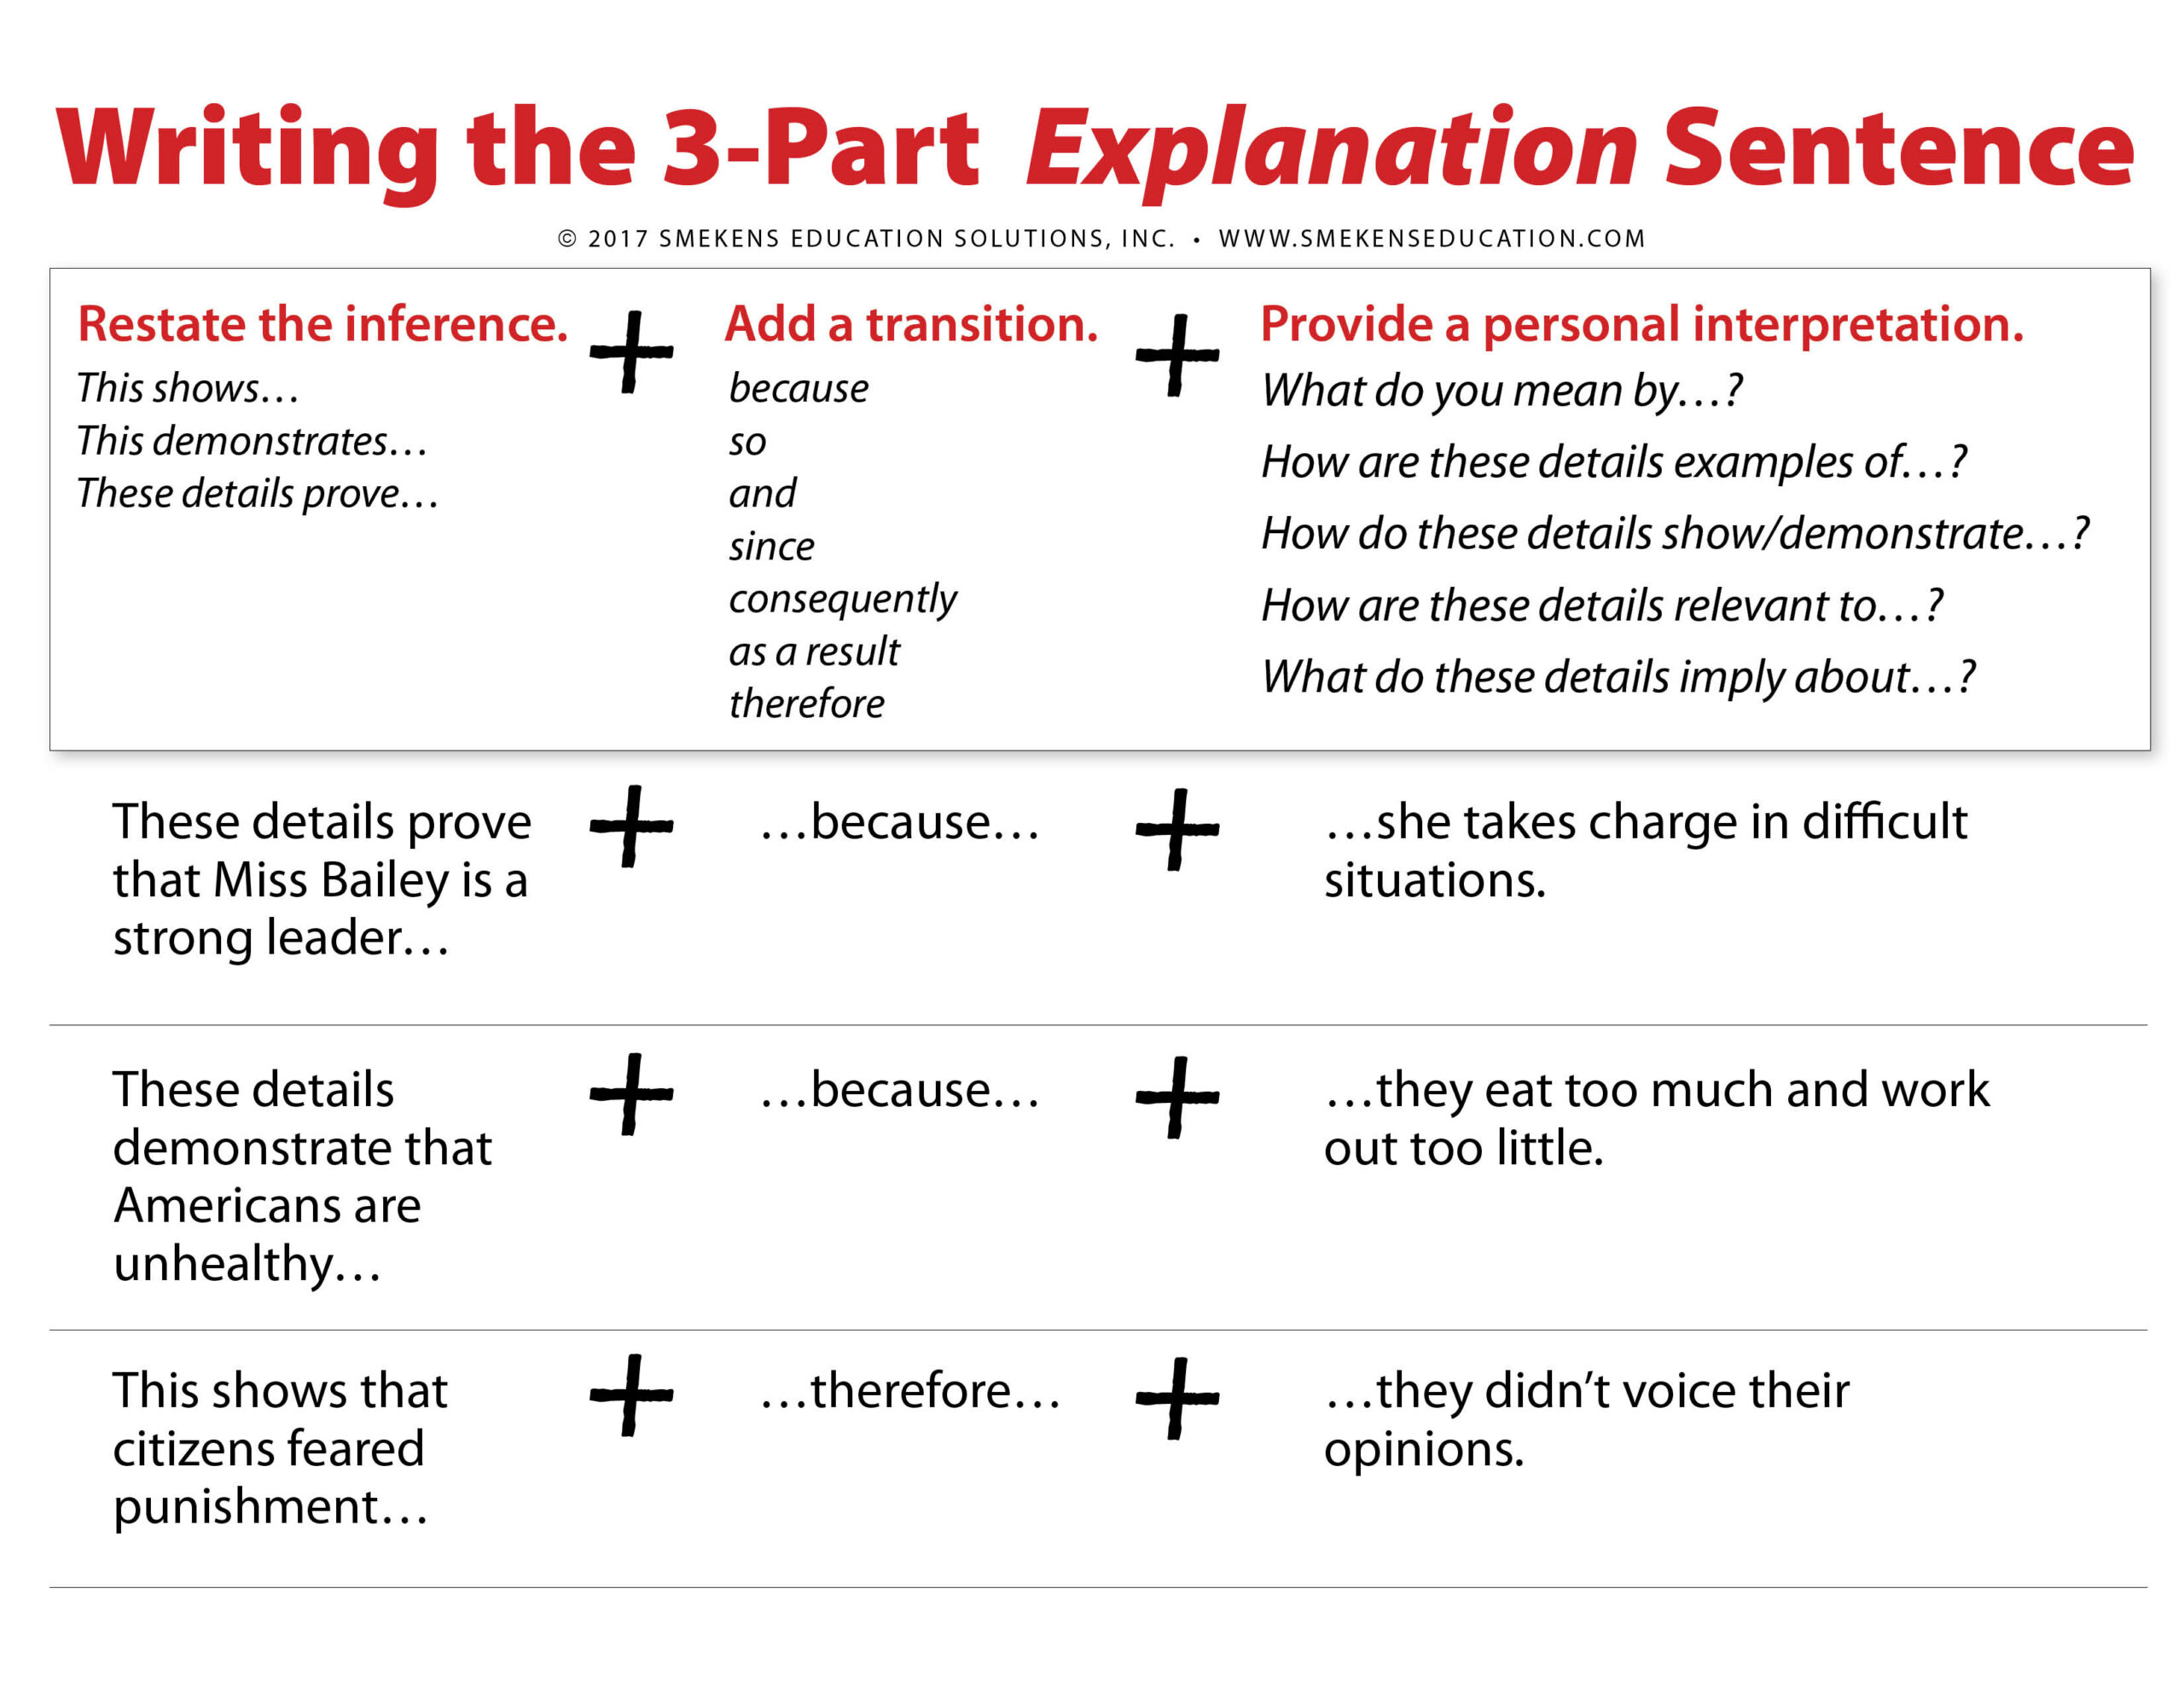 Constructed Responses: Writing the 3-Part Explanation Sentence